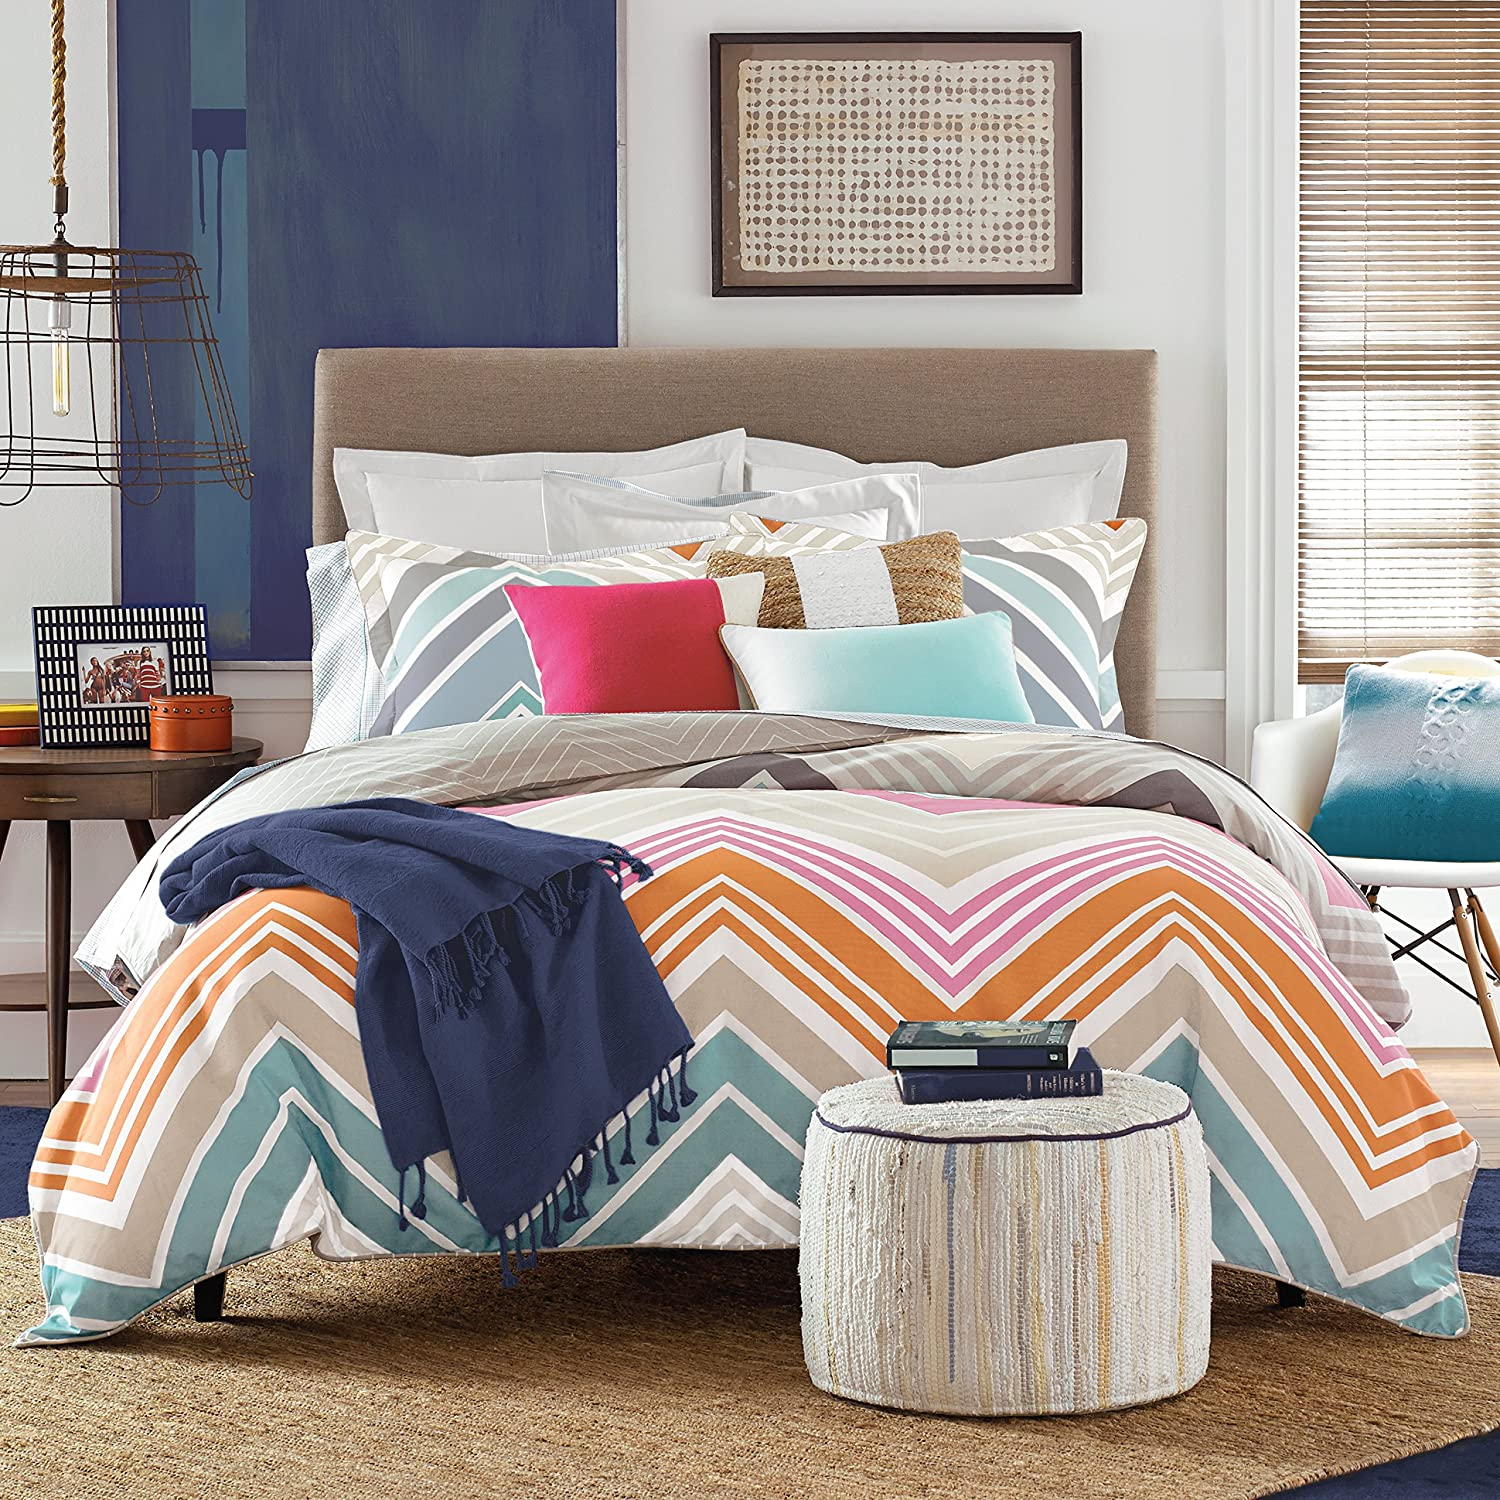 Tommy Hilfiger Midland Bed Set, Twin/Twin X-Large, Multicolor